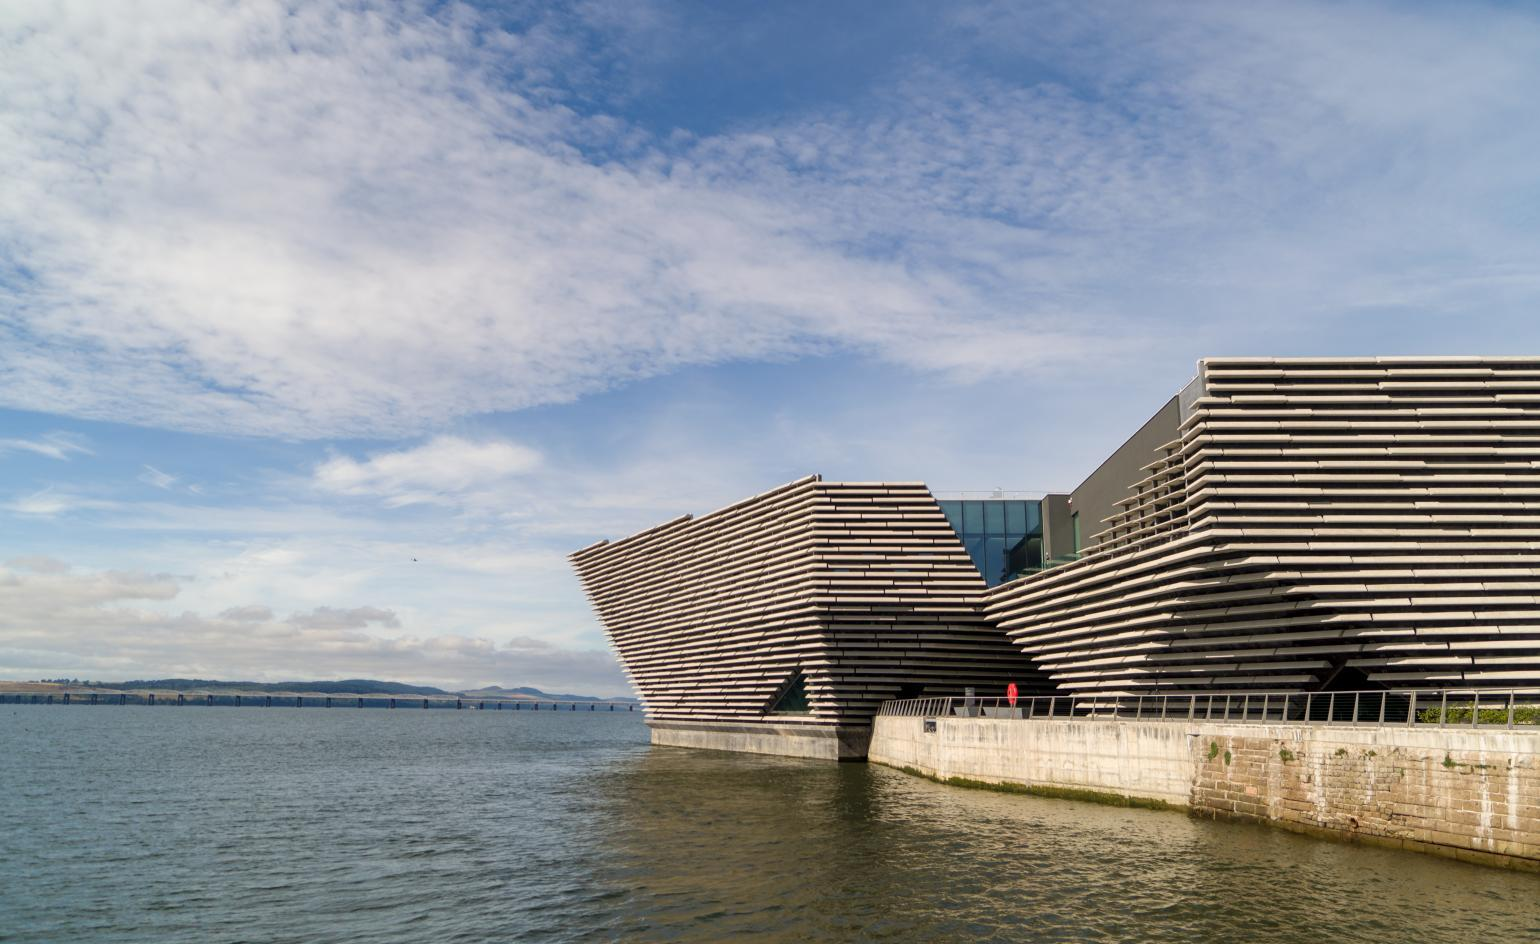 Opening on 15 September 2018, the V&A Dundee will be the lauded Japanese architect's first building in the UK / Rapid Visual Media